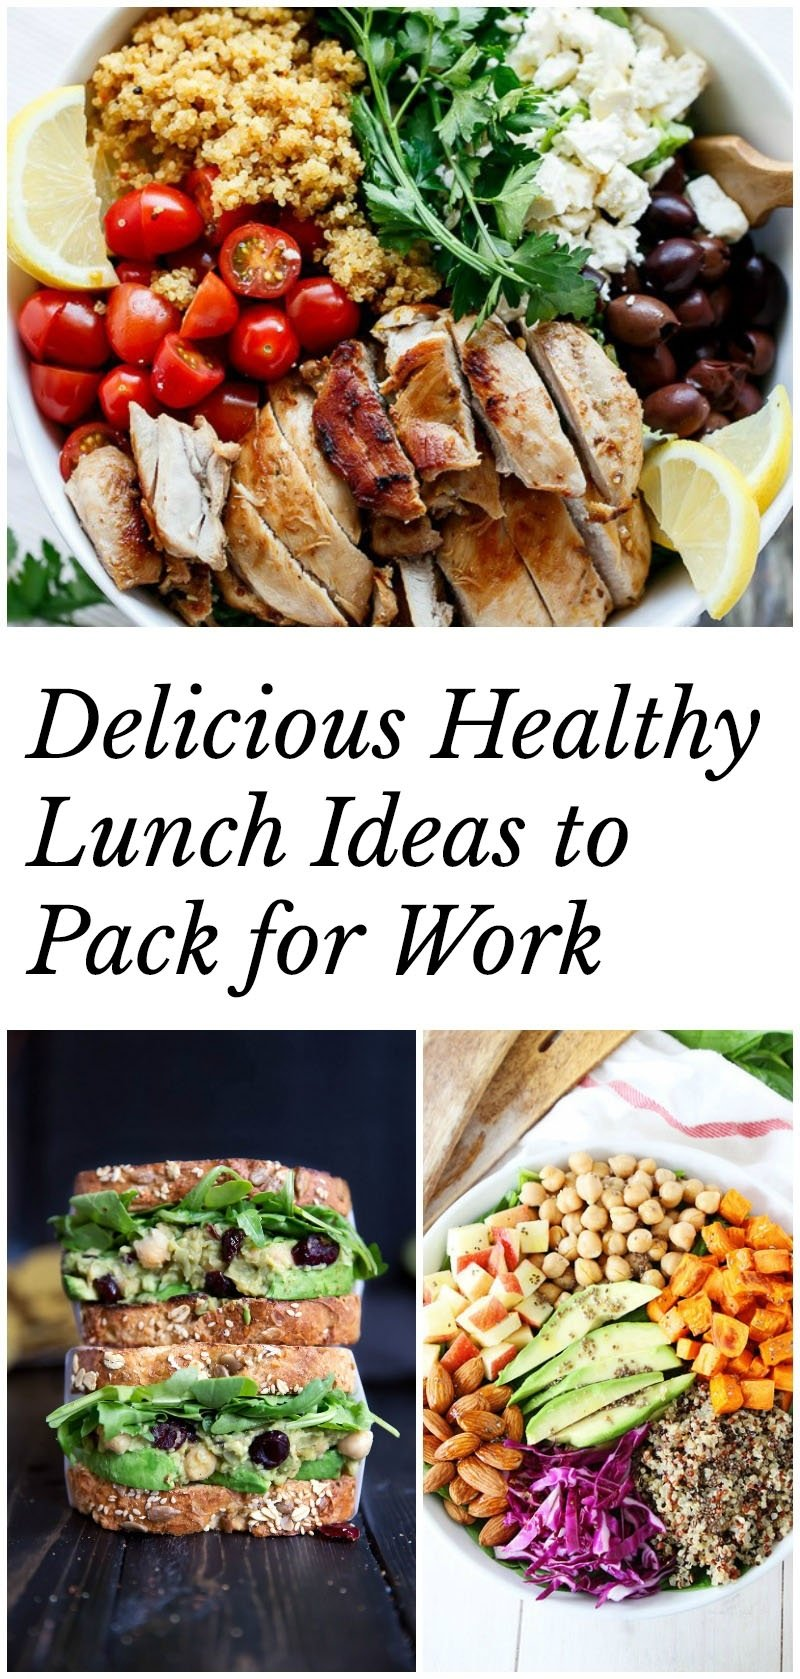 10 Perfect Quick And Easy Lunch Ideas For Work healthy lunch ideas to pack for work 40 recipes 11 2020